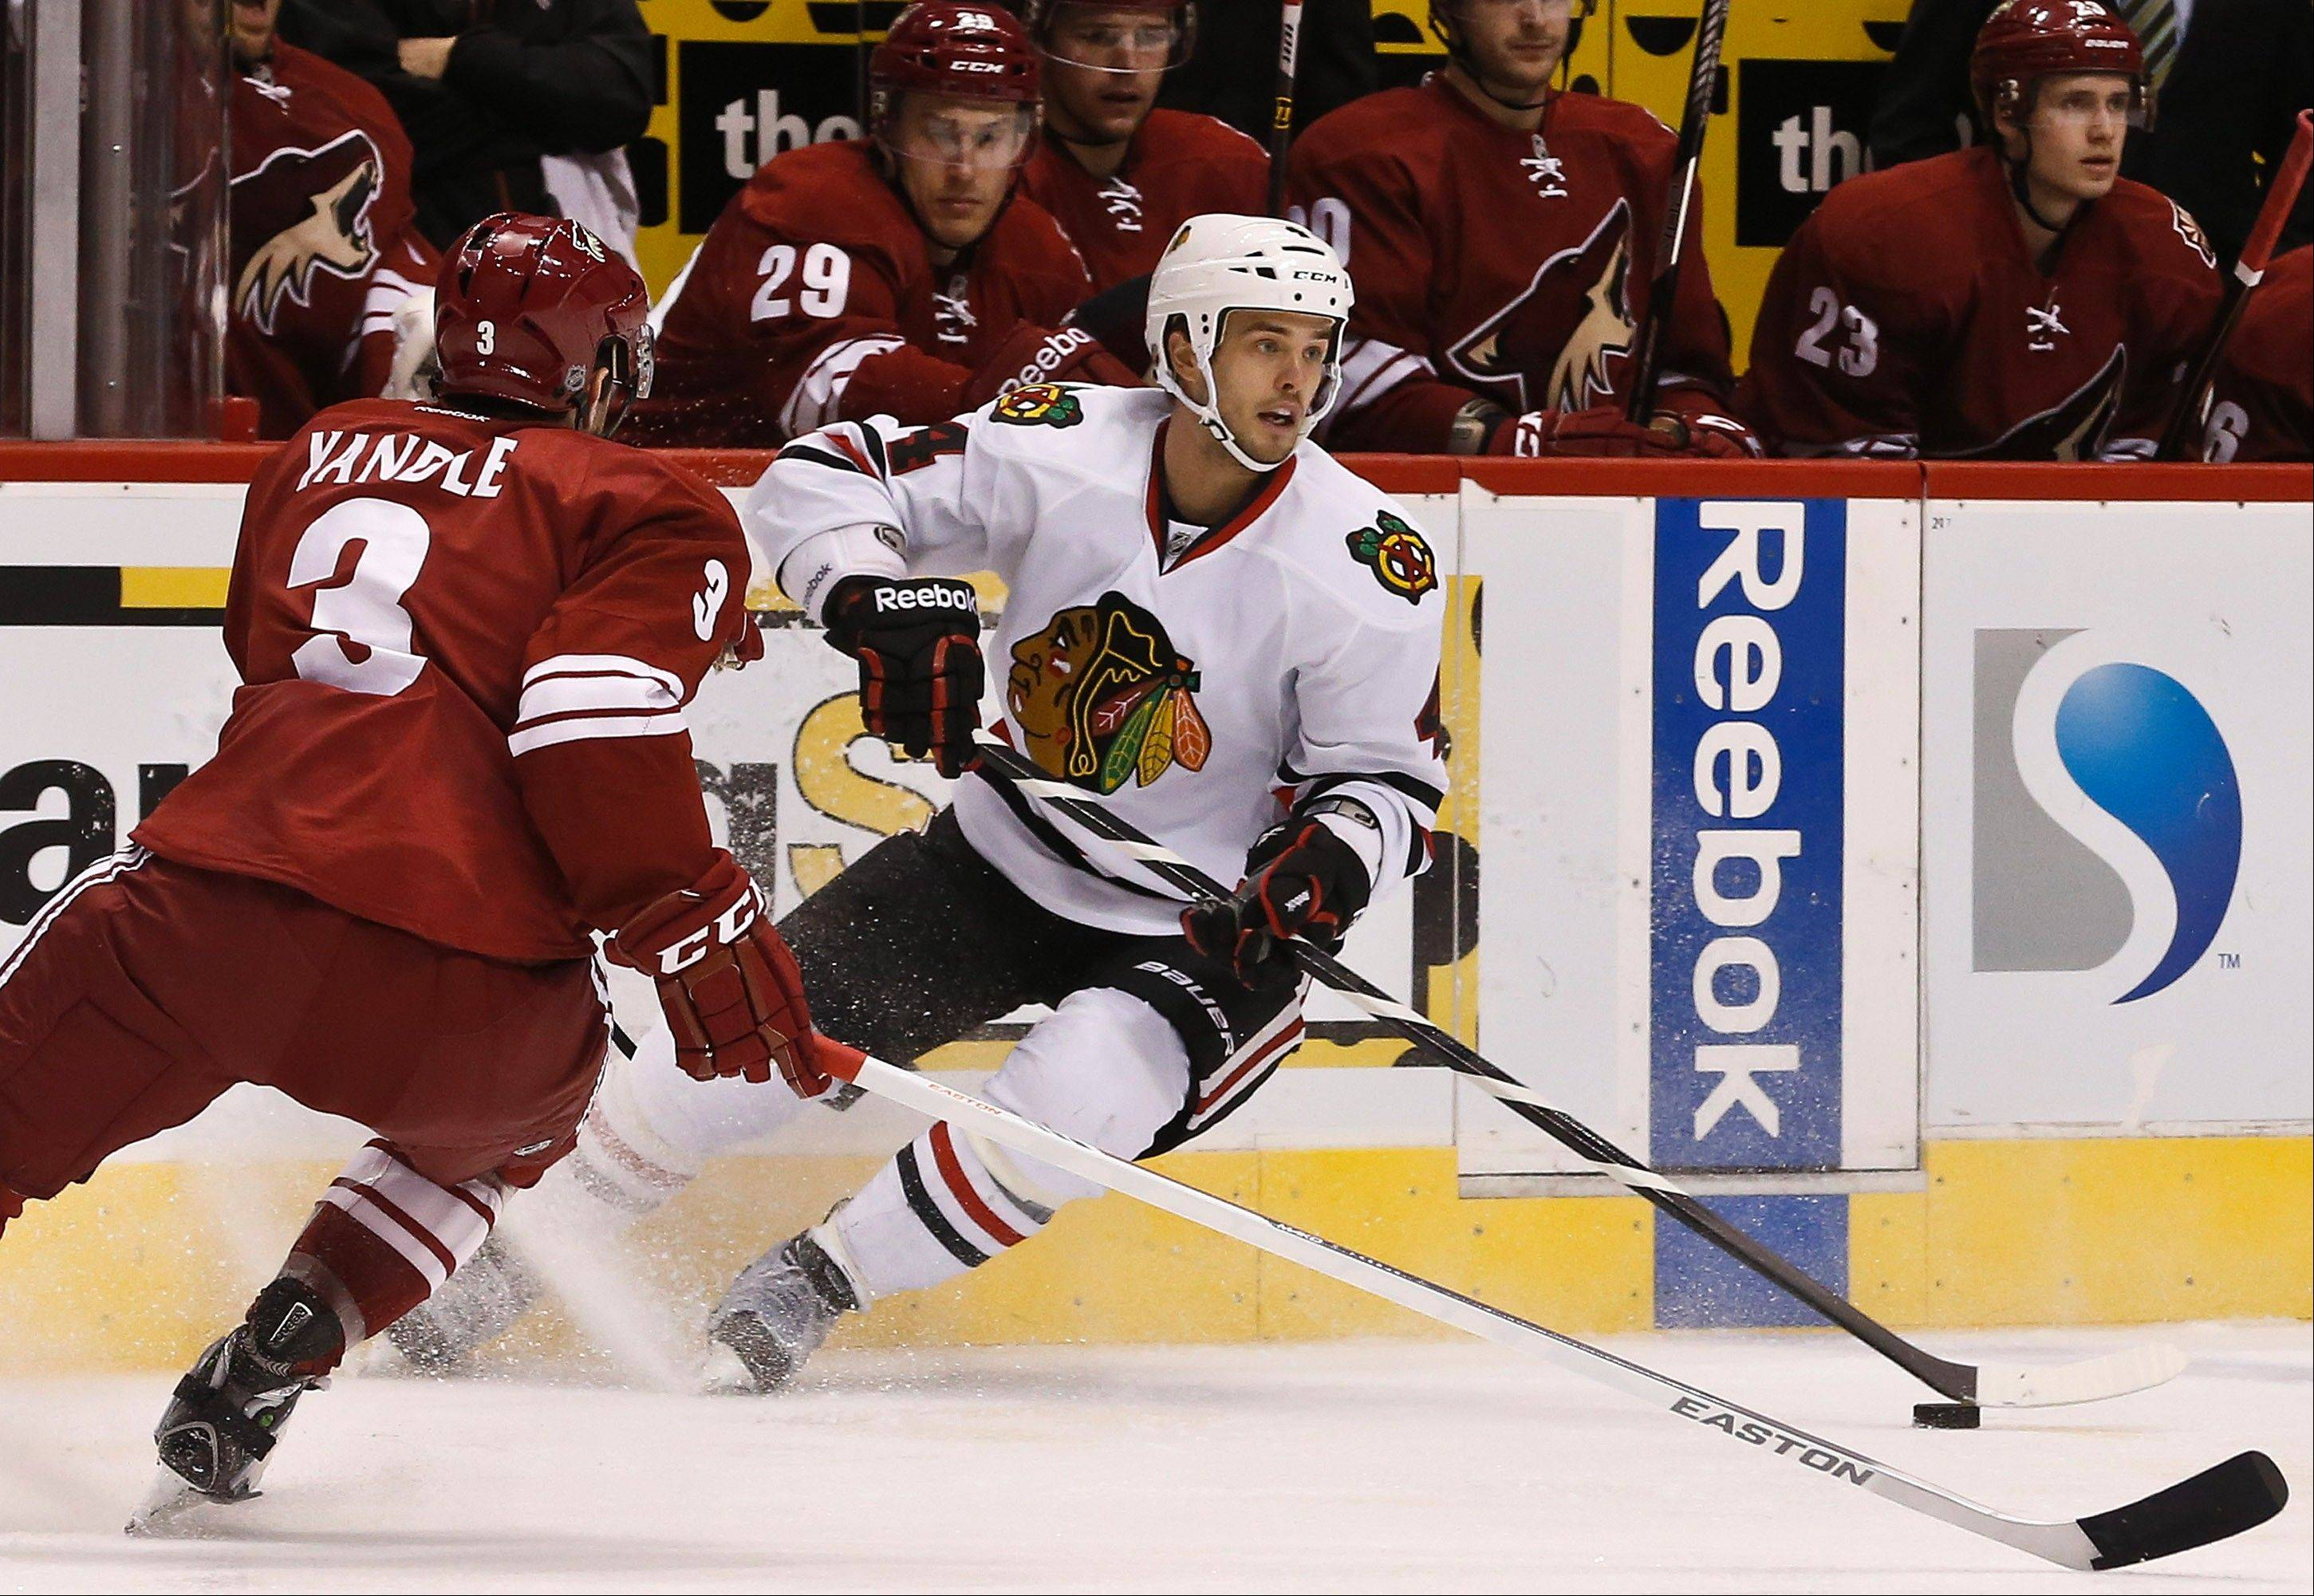 Niklas Hjalmarsson (4) is plus-8 after 15 games, ranking him second among Blackhawks defensemen behind partner Johnny Oduya, who is plus-10.